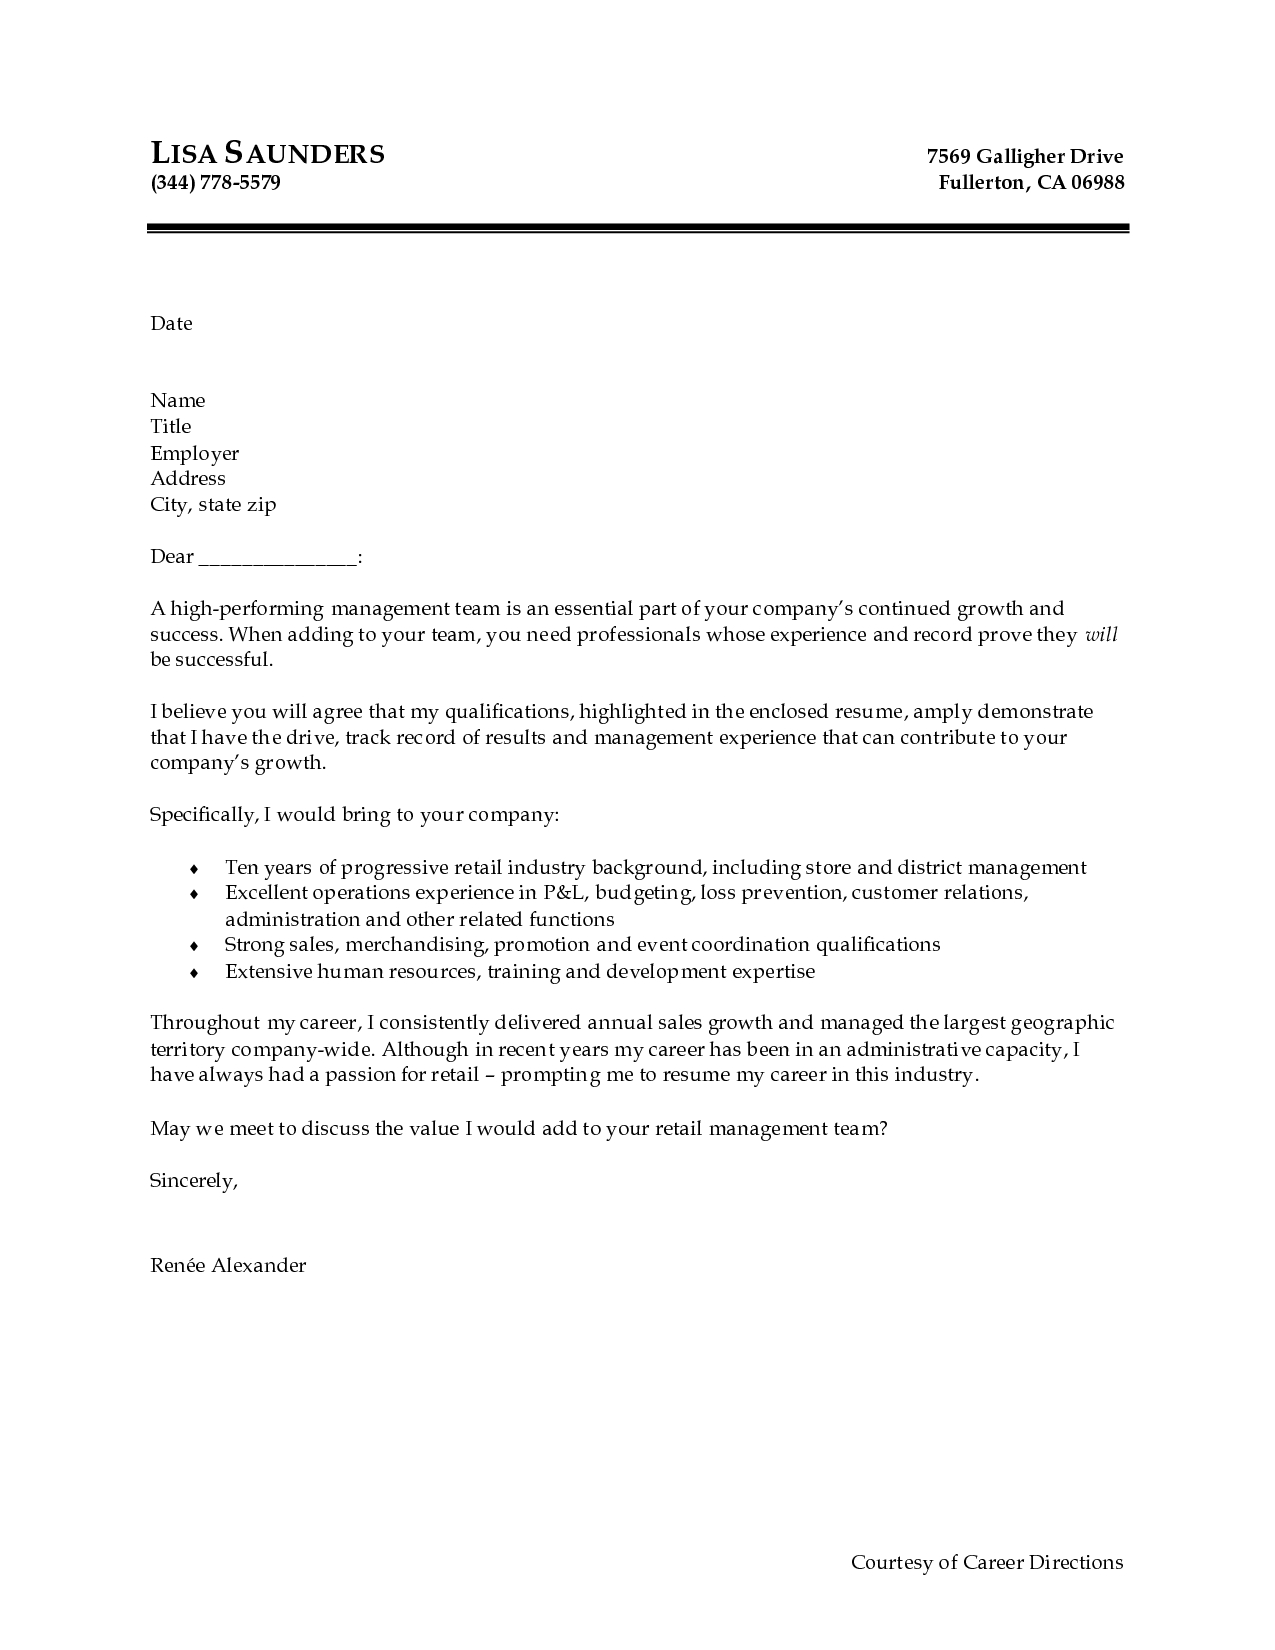 Best Cover Letter Ever Examples Cover Letter Examples  Cover Letter On Resume